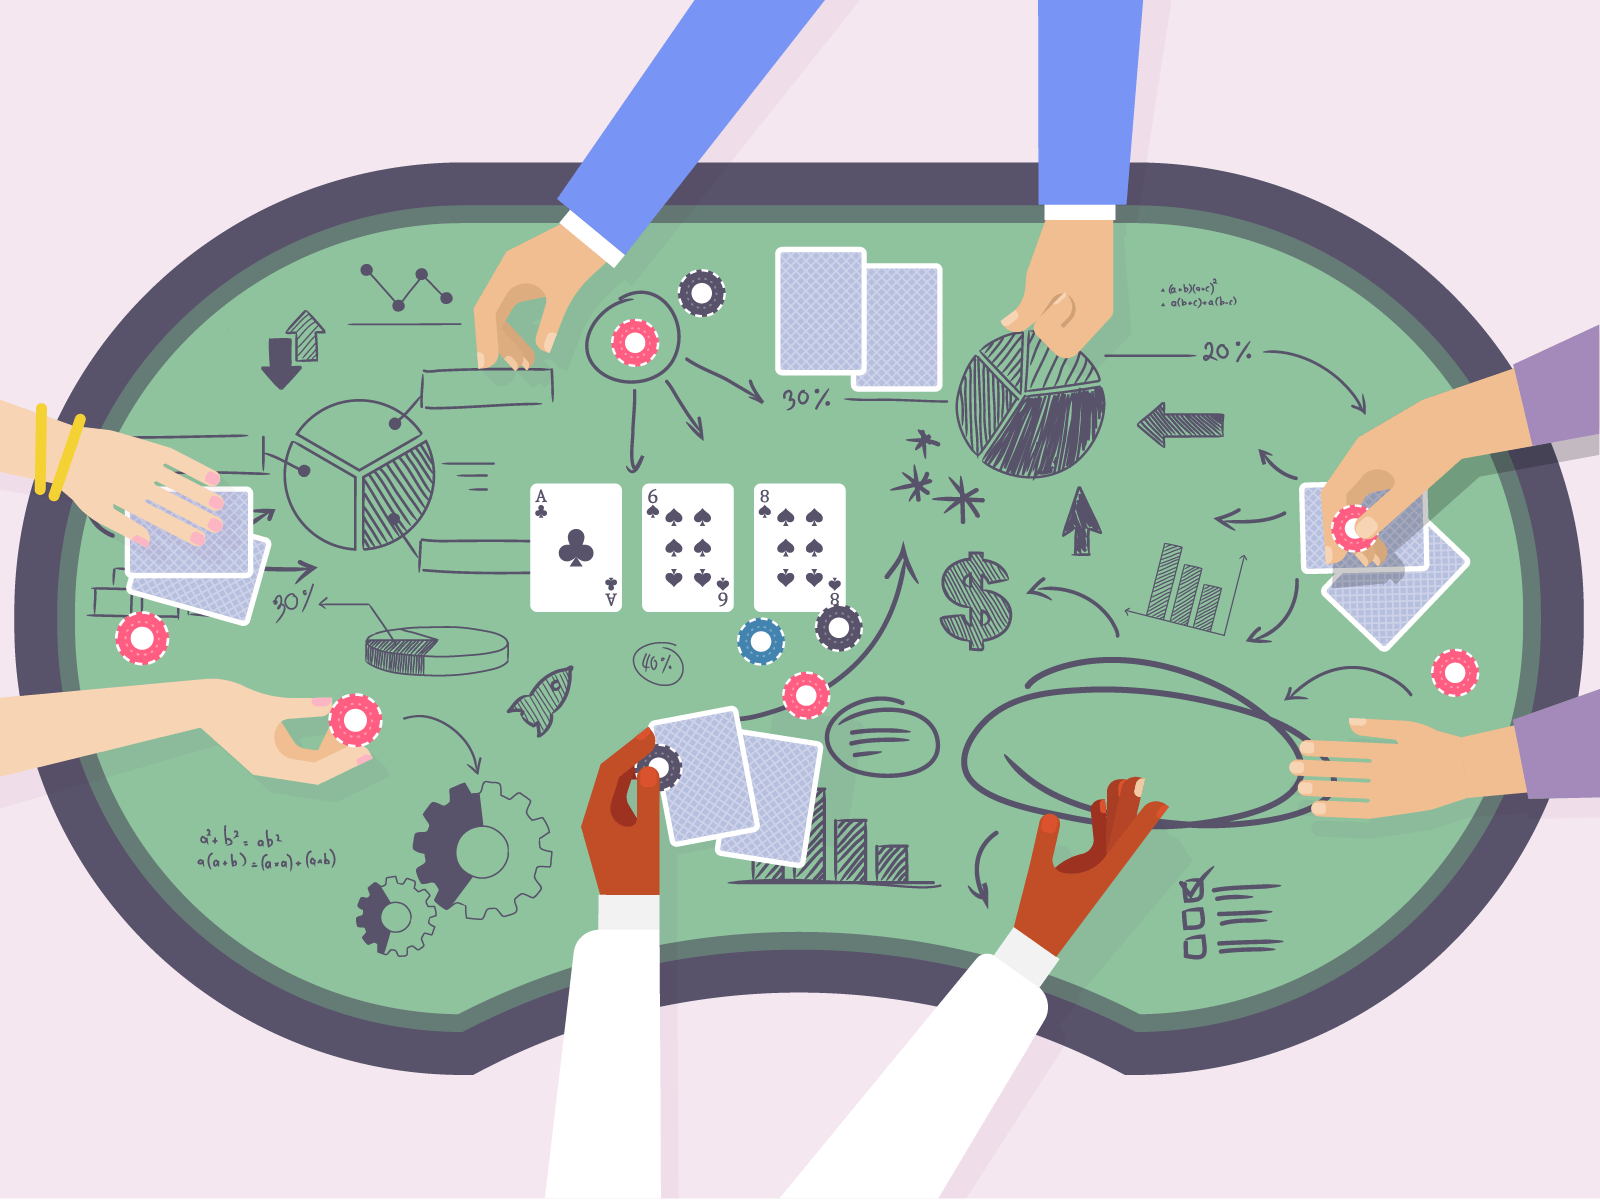 Poker table with maths symbols drawn all over it